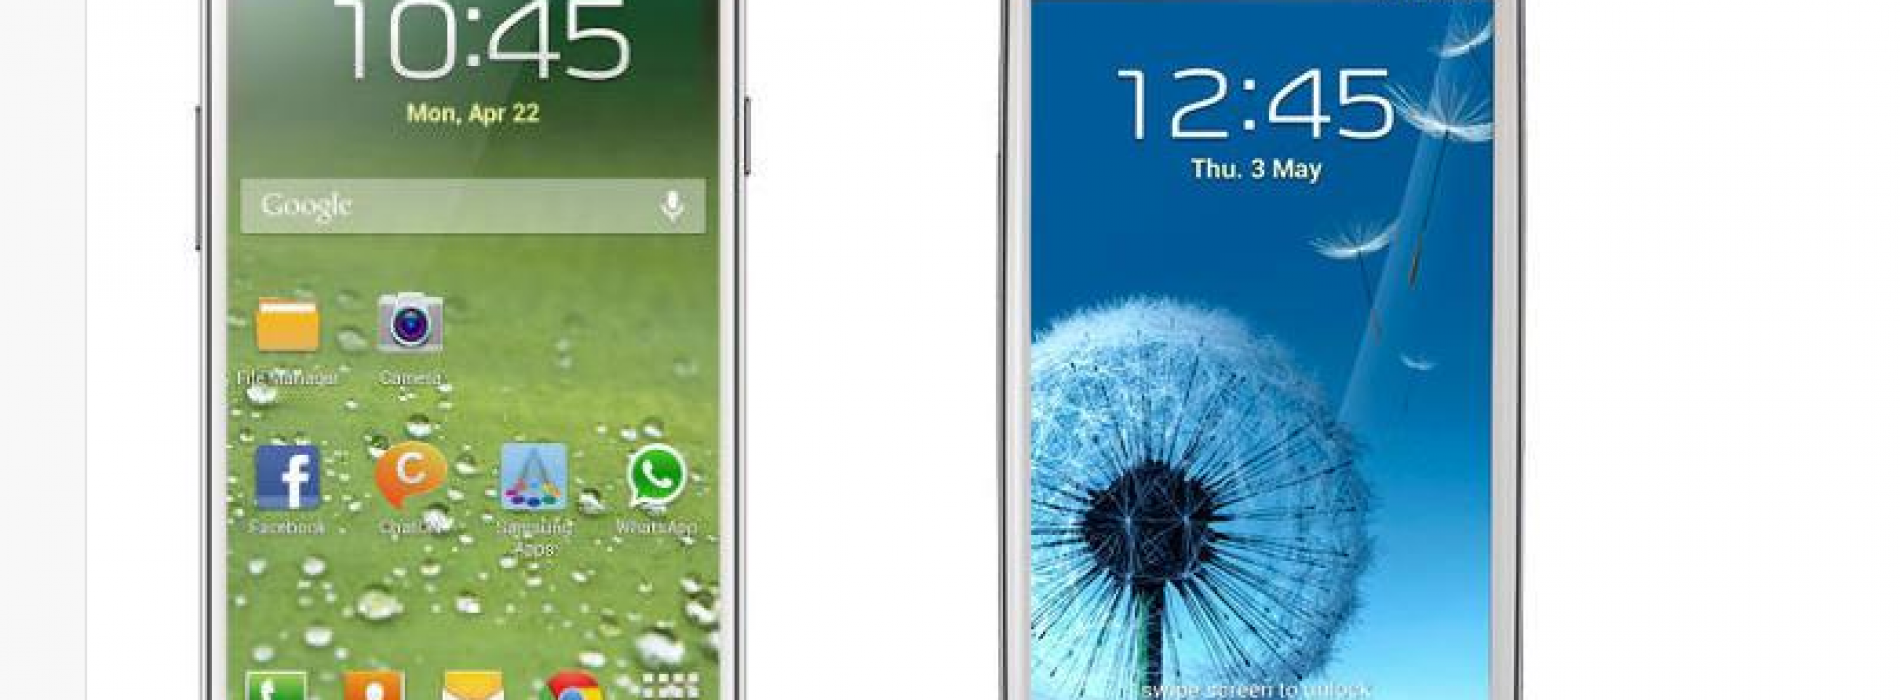 More possible pictures of the Galaxy S IV leak